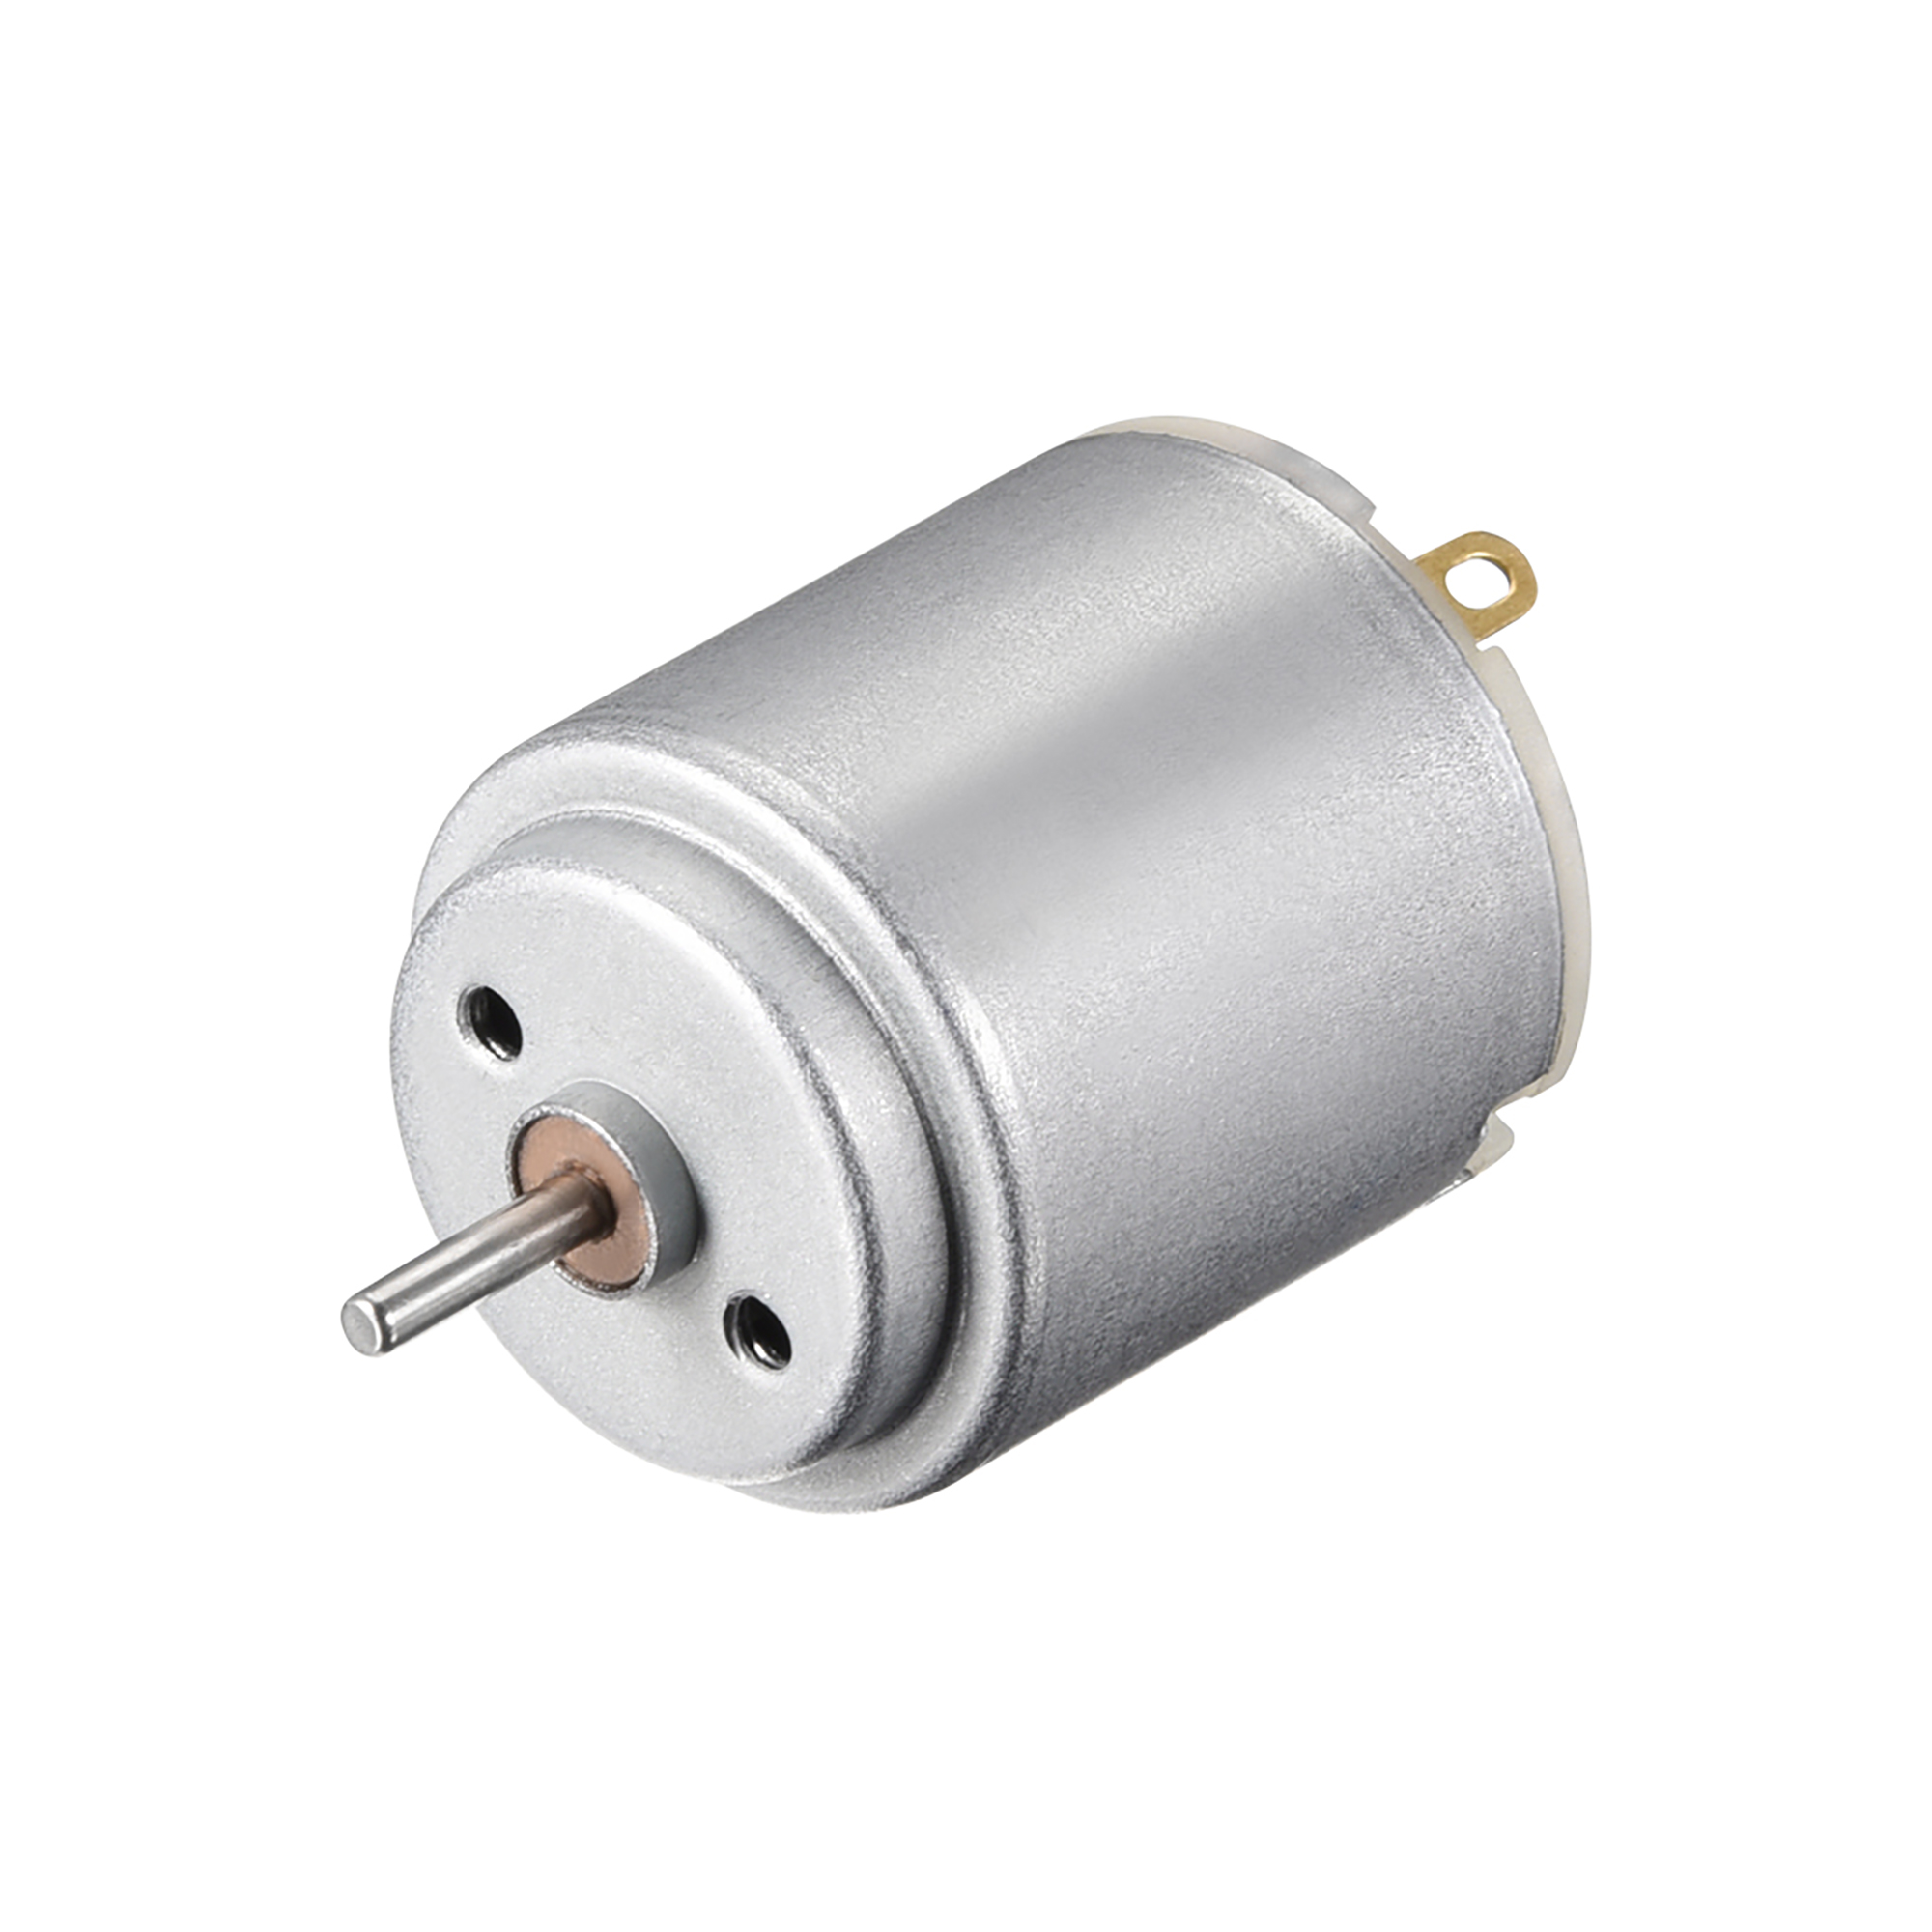 Micro Motor DC 3V 12000-12800RPM High Speed Motor for DIY Toy Cars Remote Control - image 4 of 4